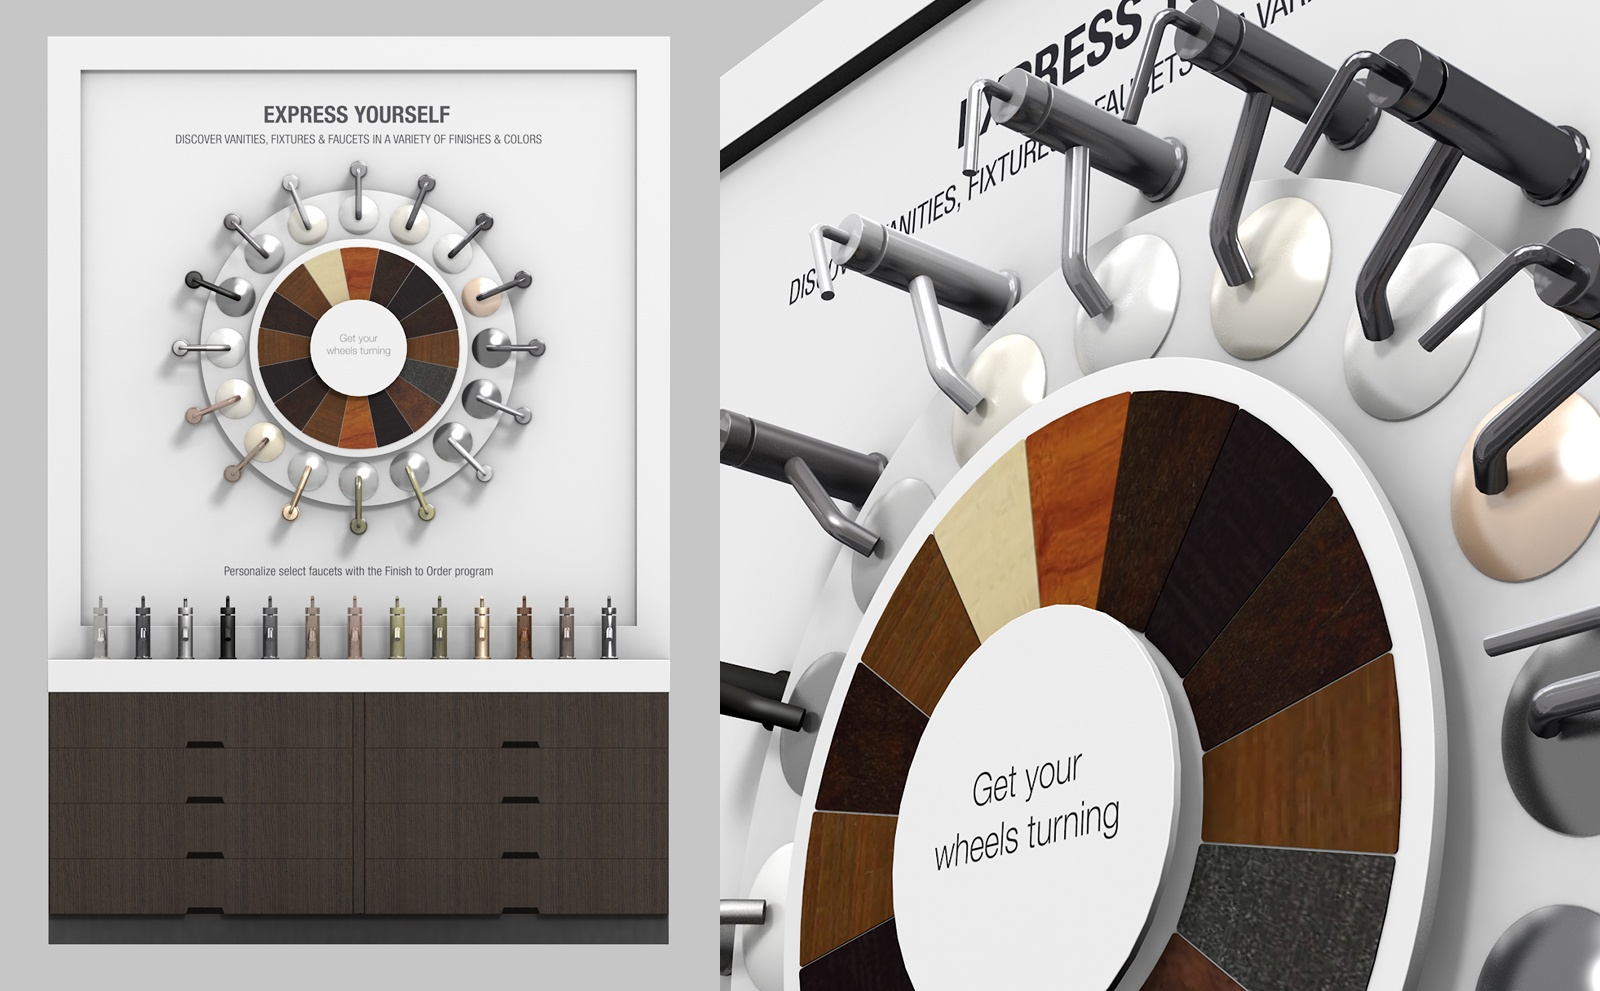 A split view showing both the full product and up-close view of Kohler's interactive finishes display, designed and built by The Bernard Group.